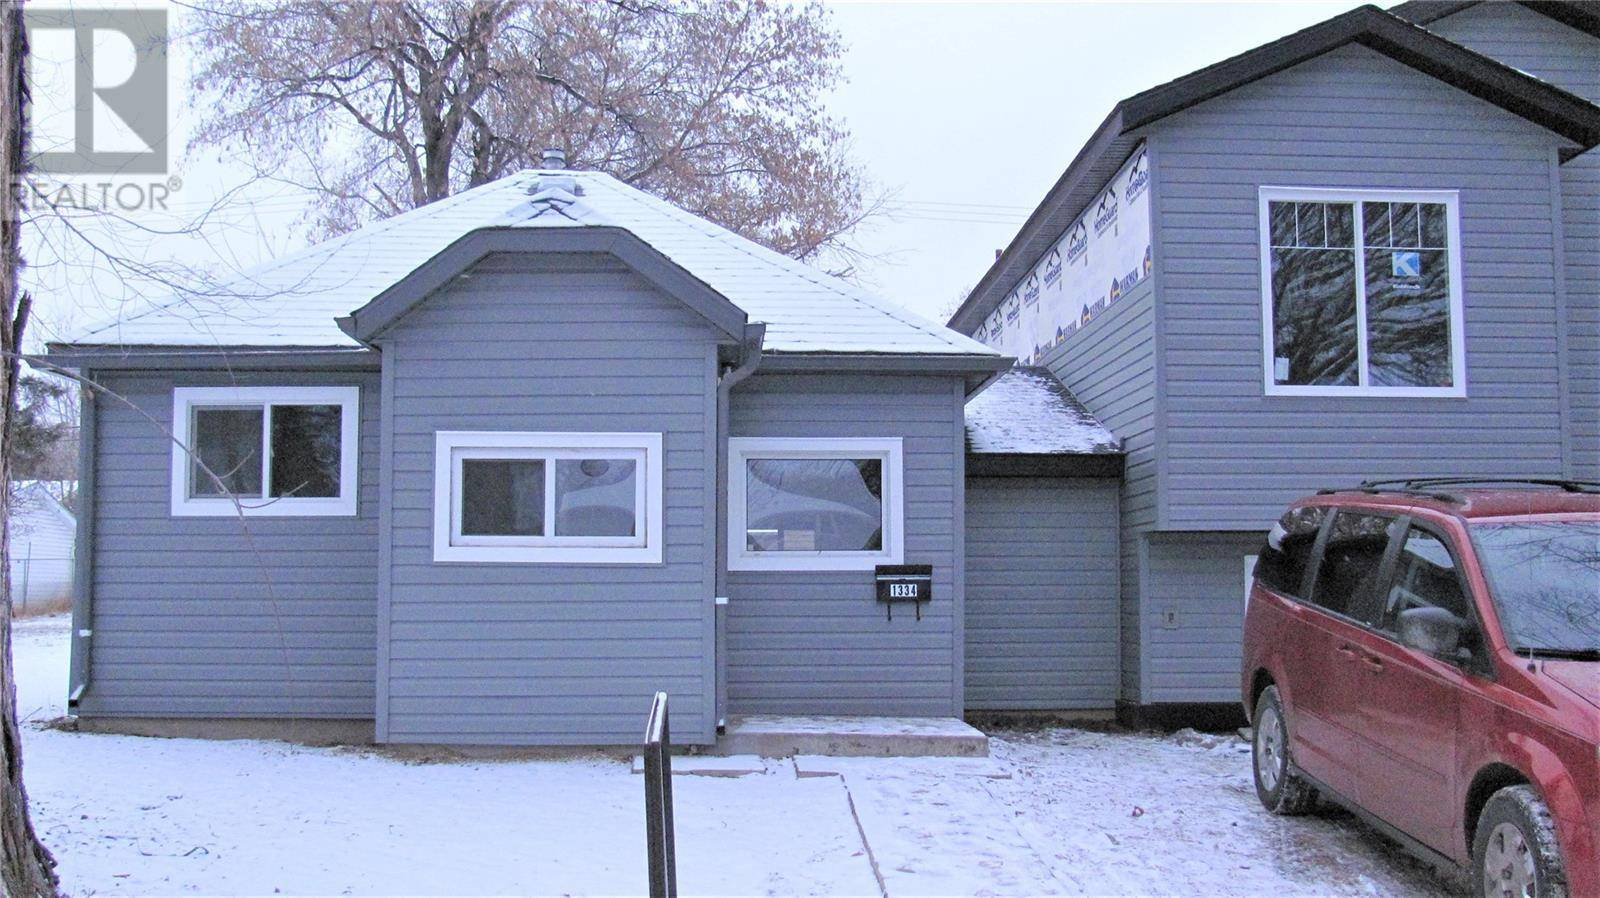 House for sale at 1334 I Ave N Saskatoon Saskatchewan - MLS: SK794070